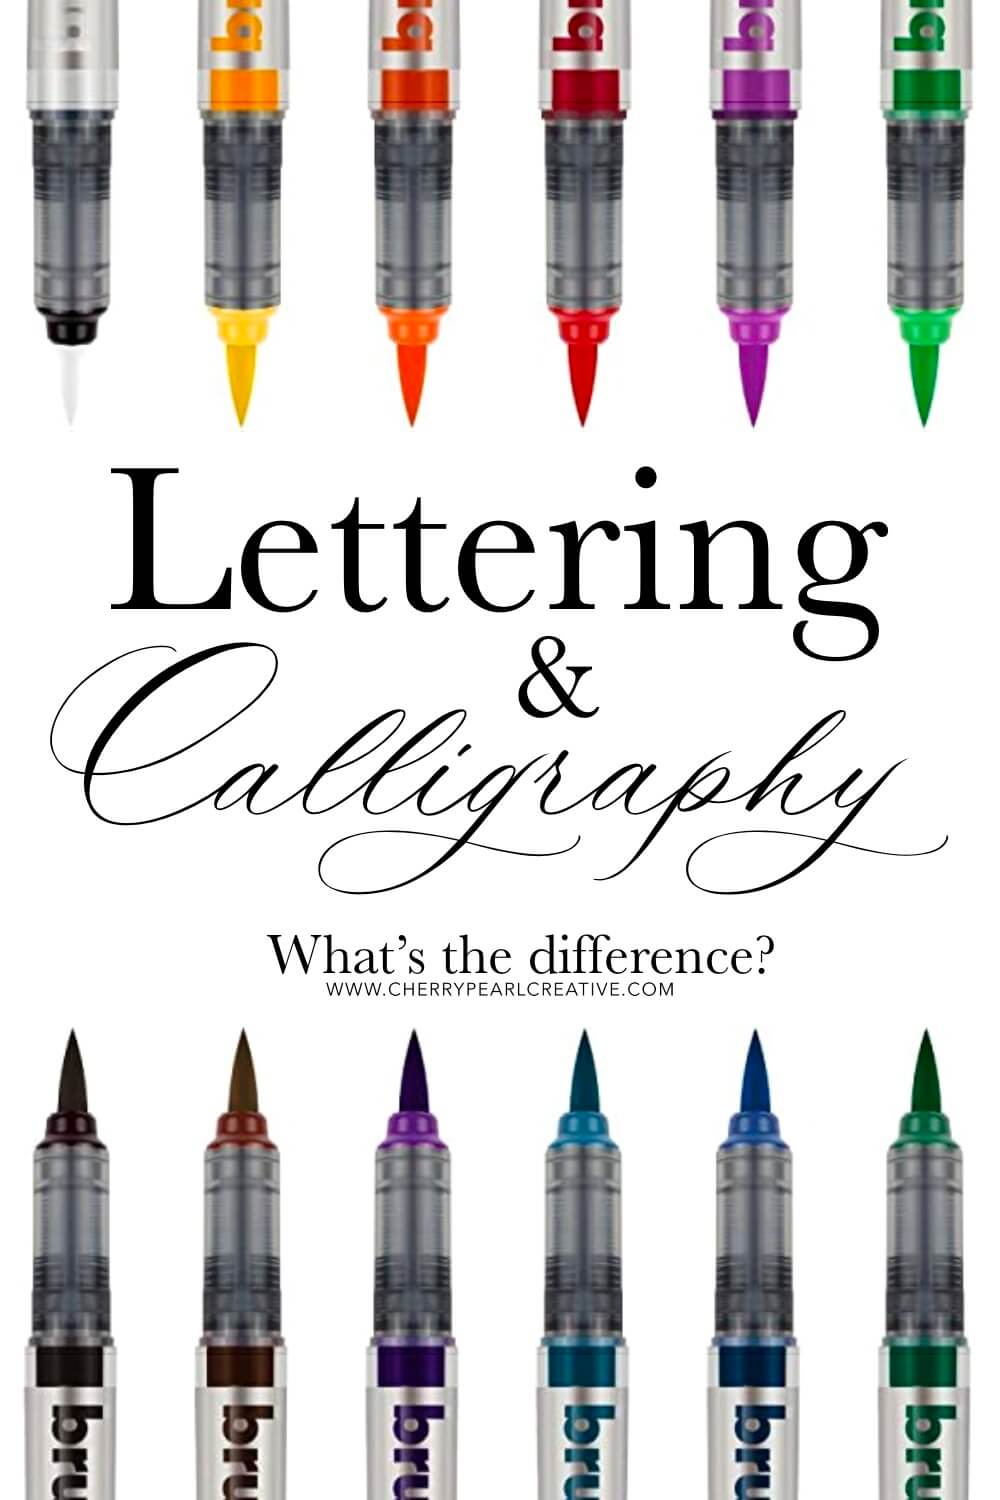 Lettering & Calligraphy What's The Difference